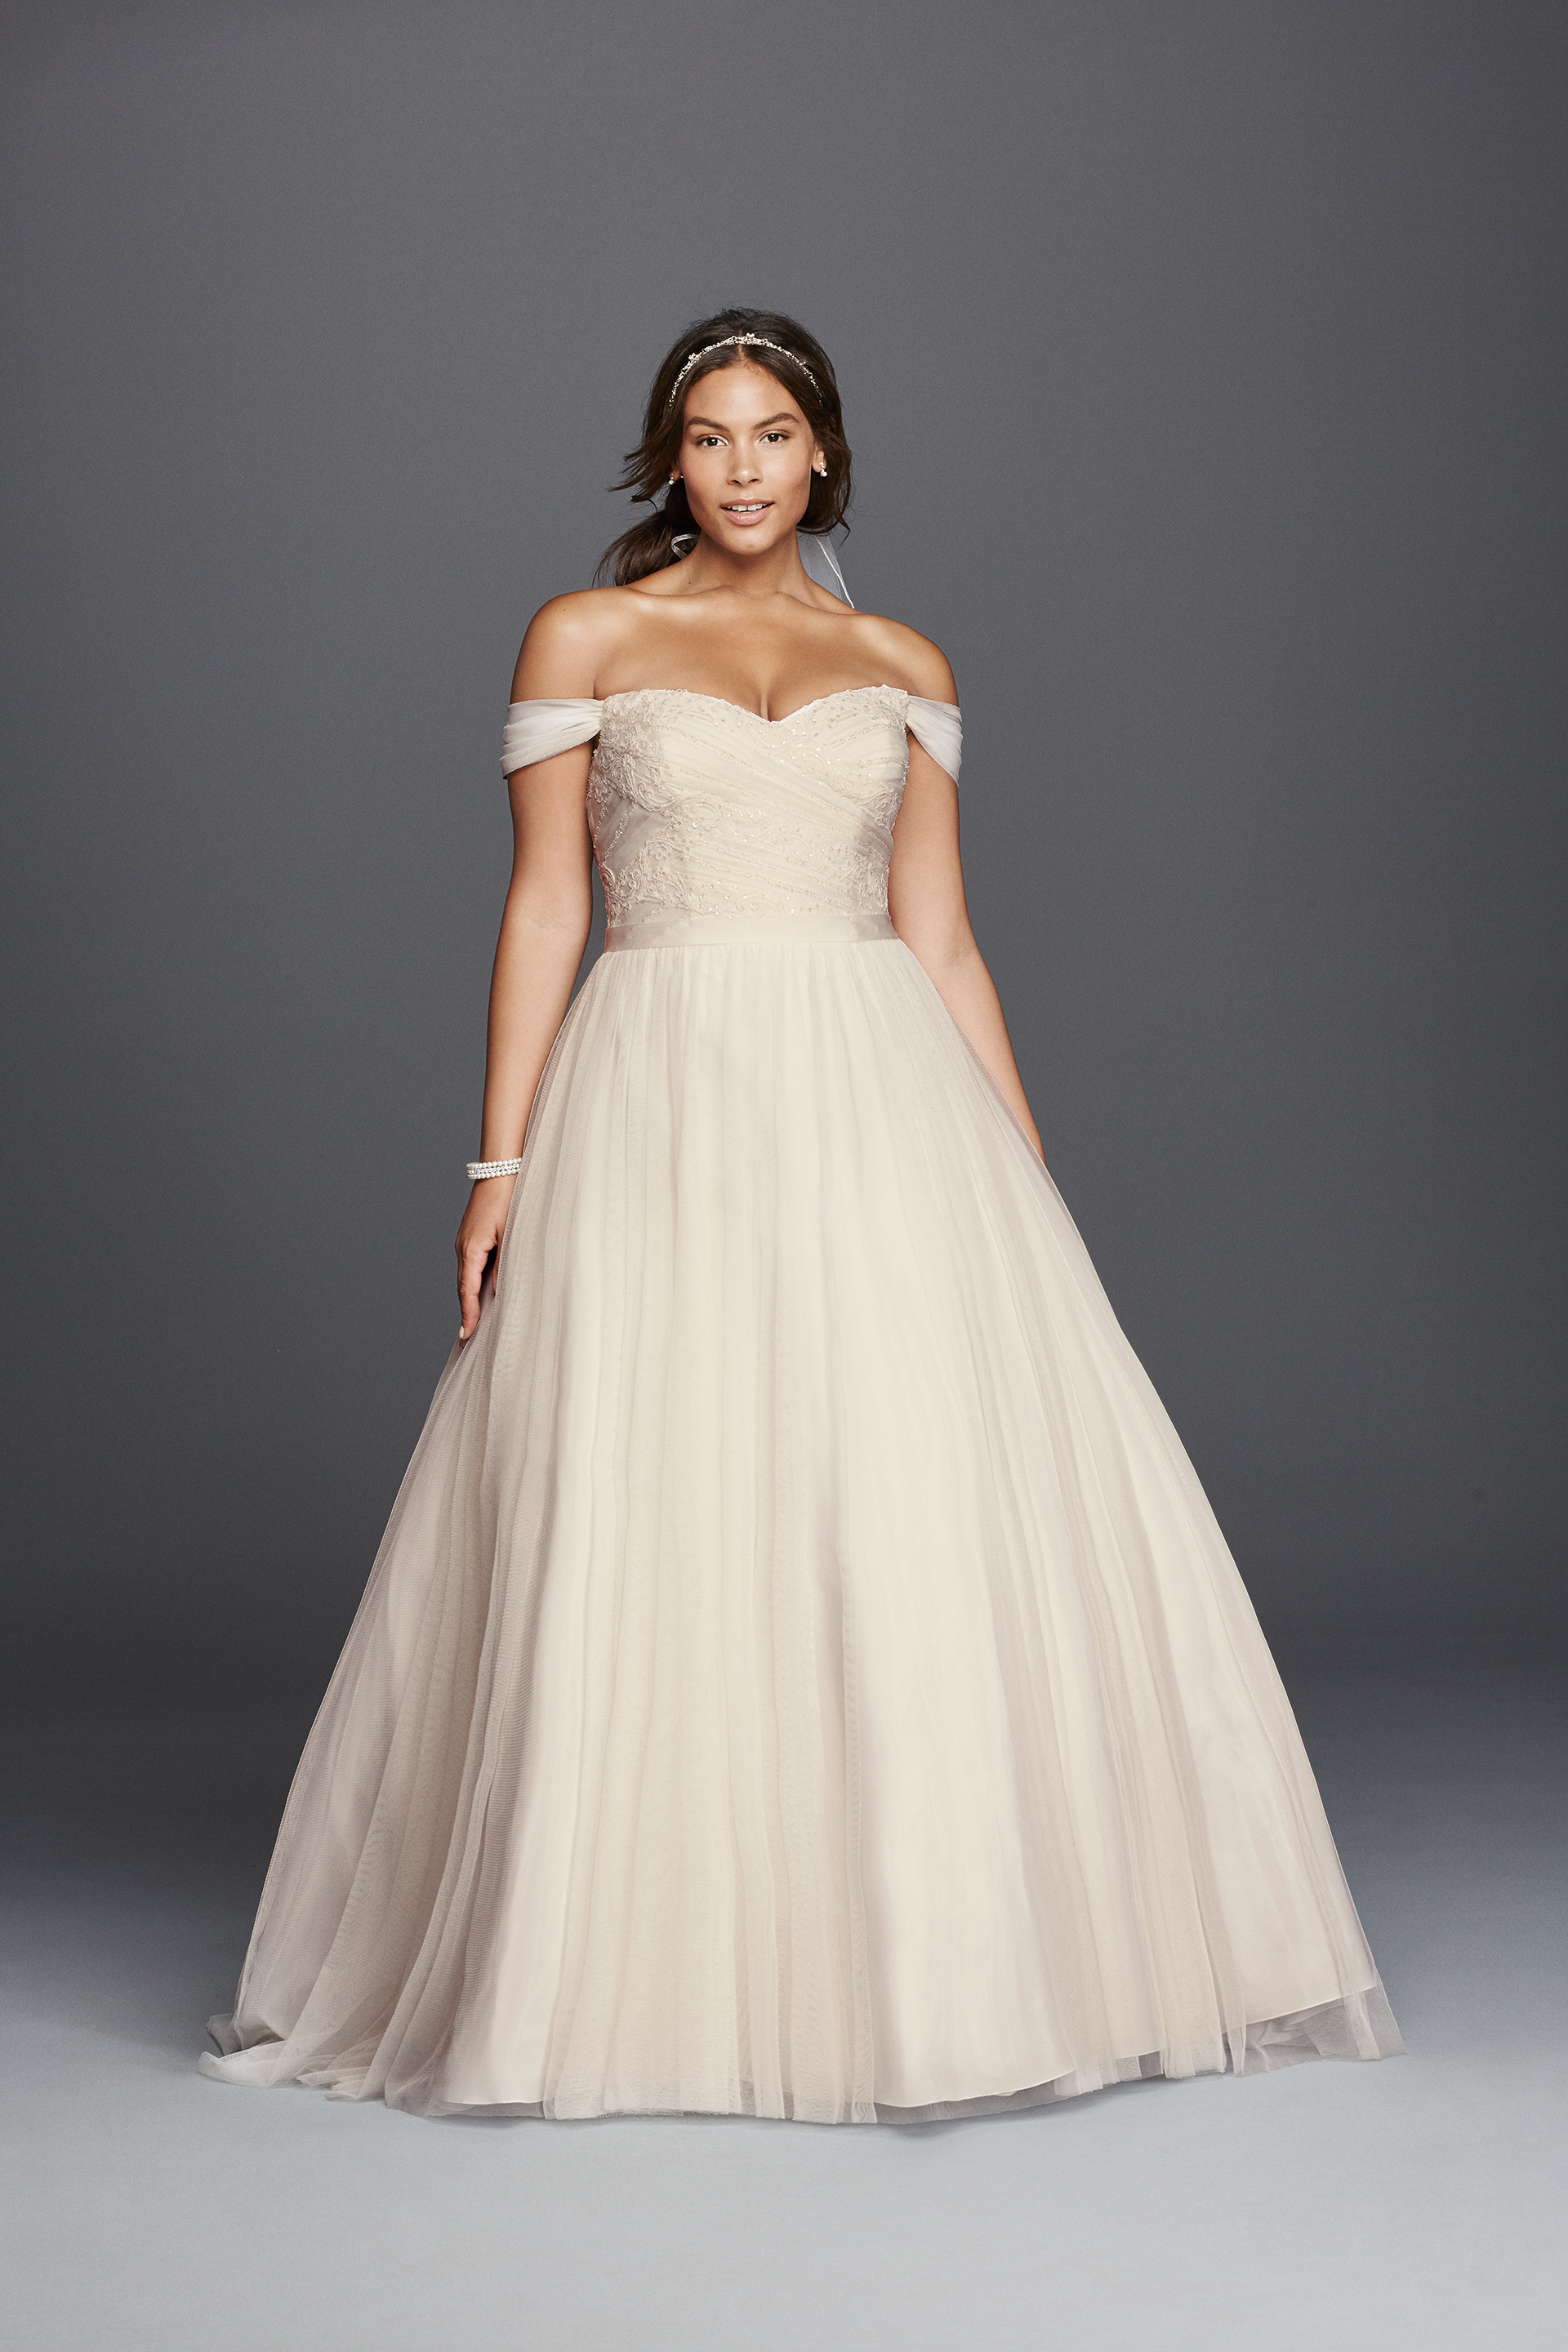 Plus Size Wedding Dresses For The Modern Bride